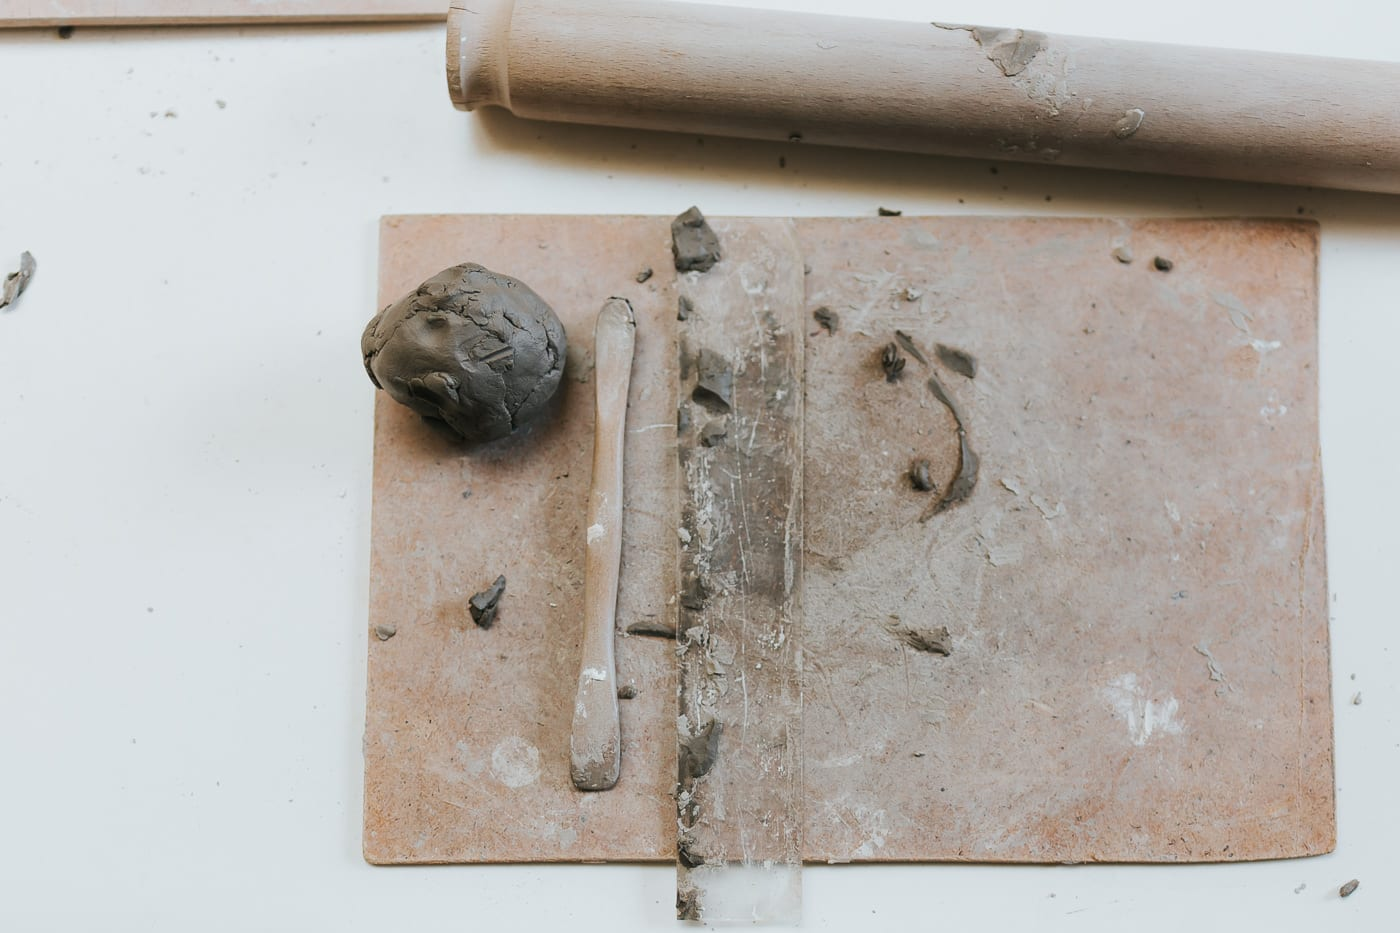 tools for shaping clay on a modelling board